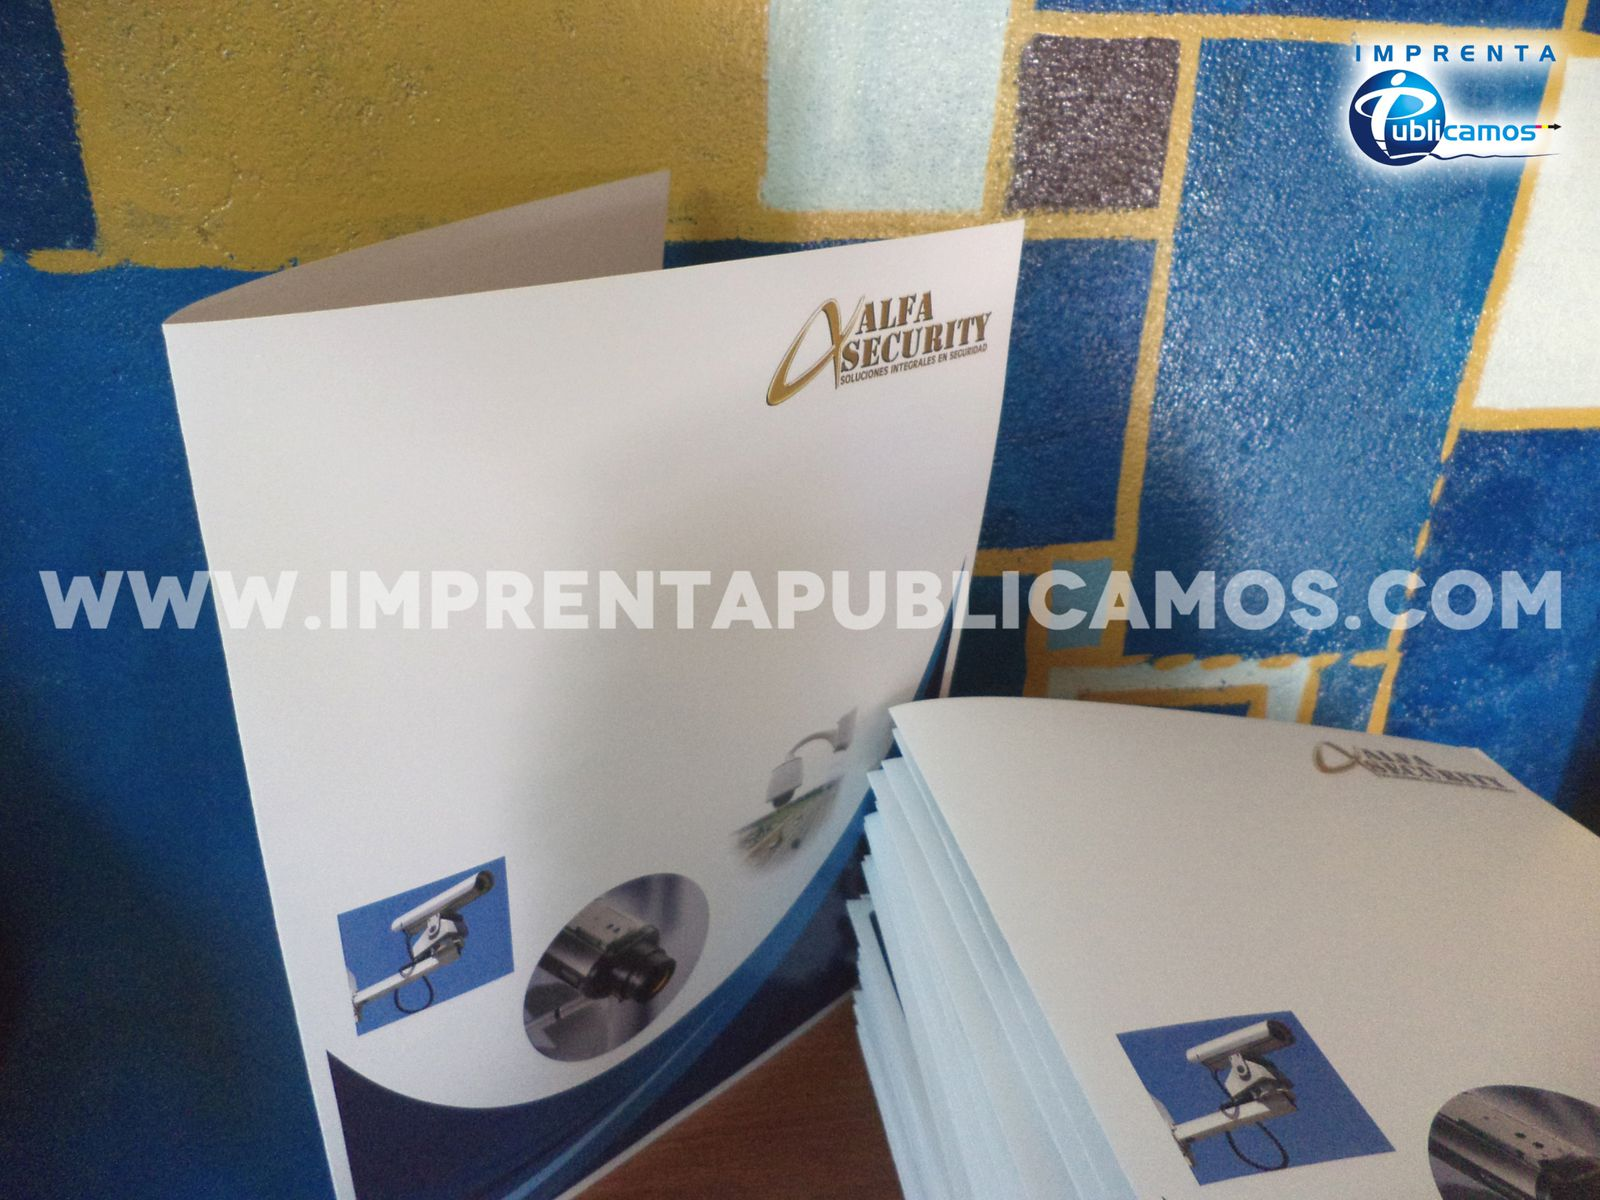 Carpetas Corporativas Todo Color / Correo: imprentapublicamos@gmail.com / Cel. y Whatsapp: +56985772933